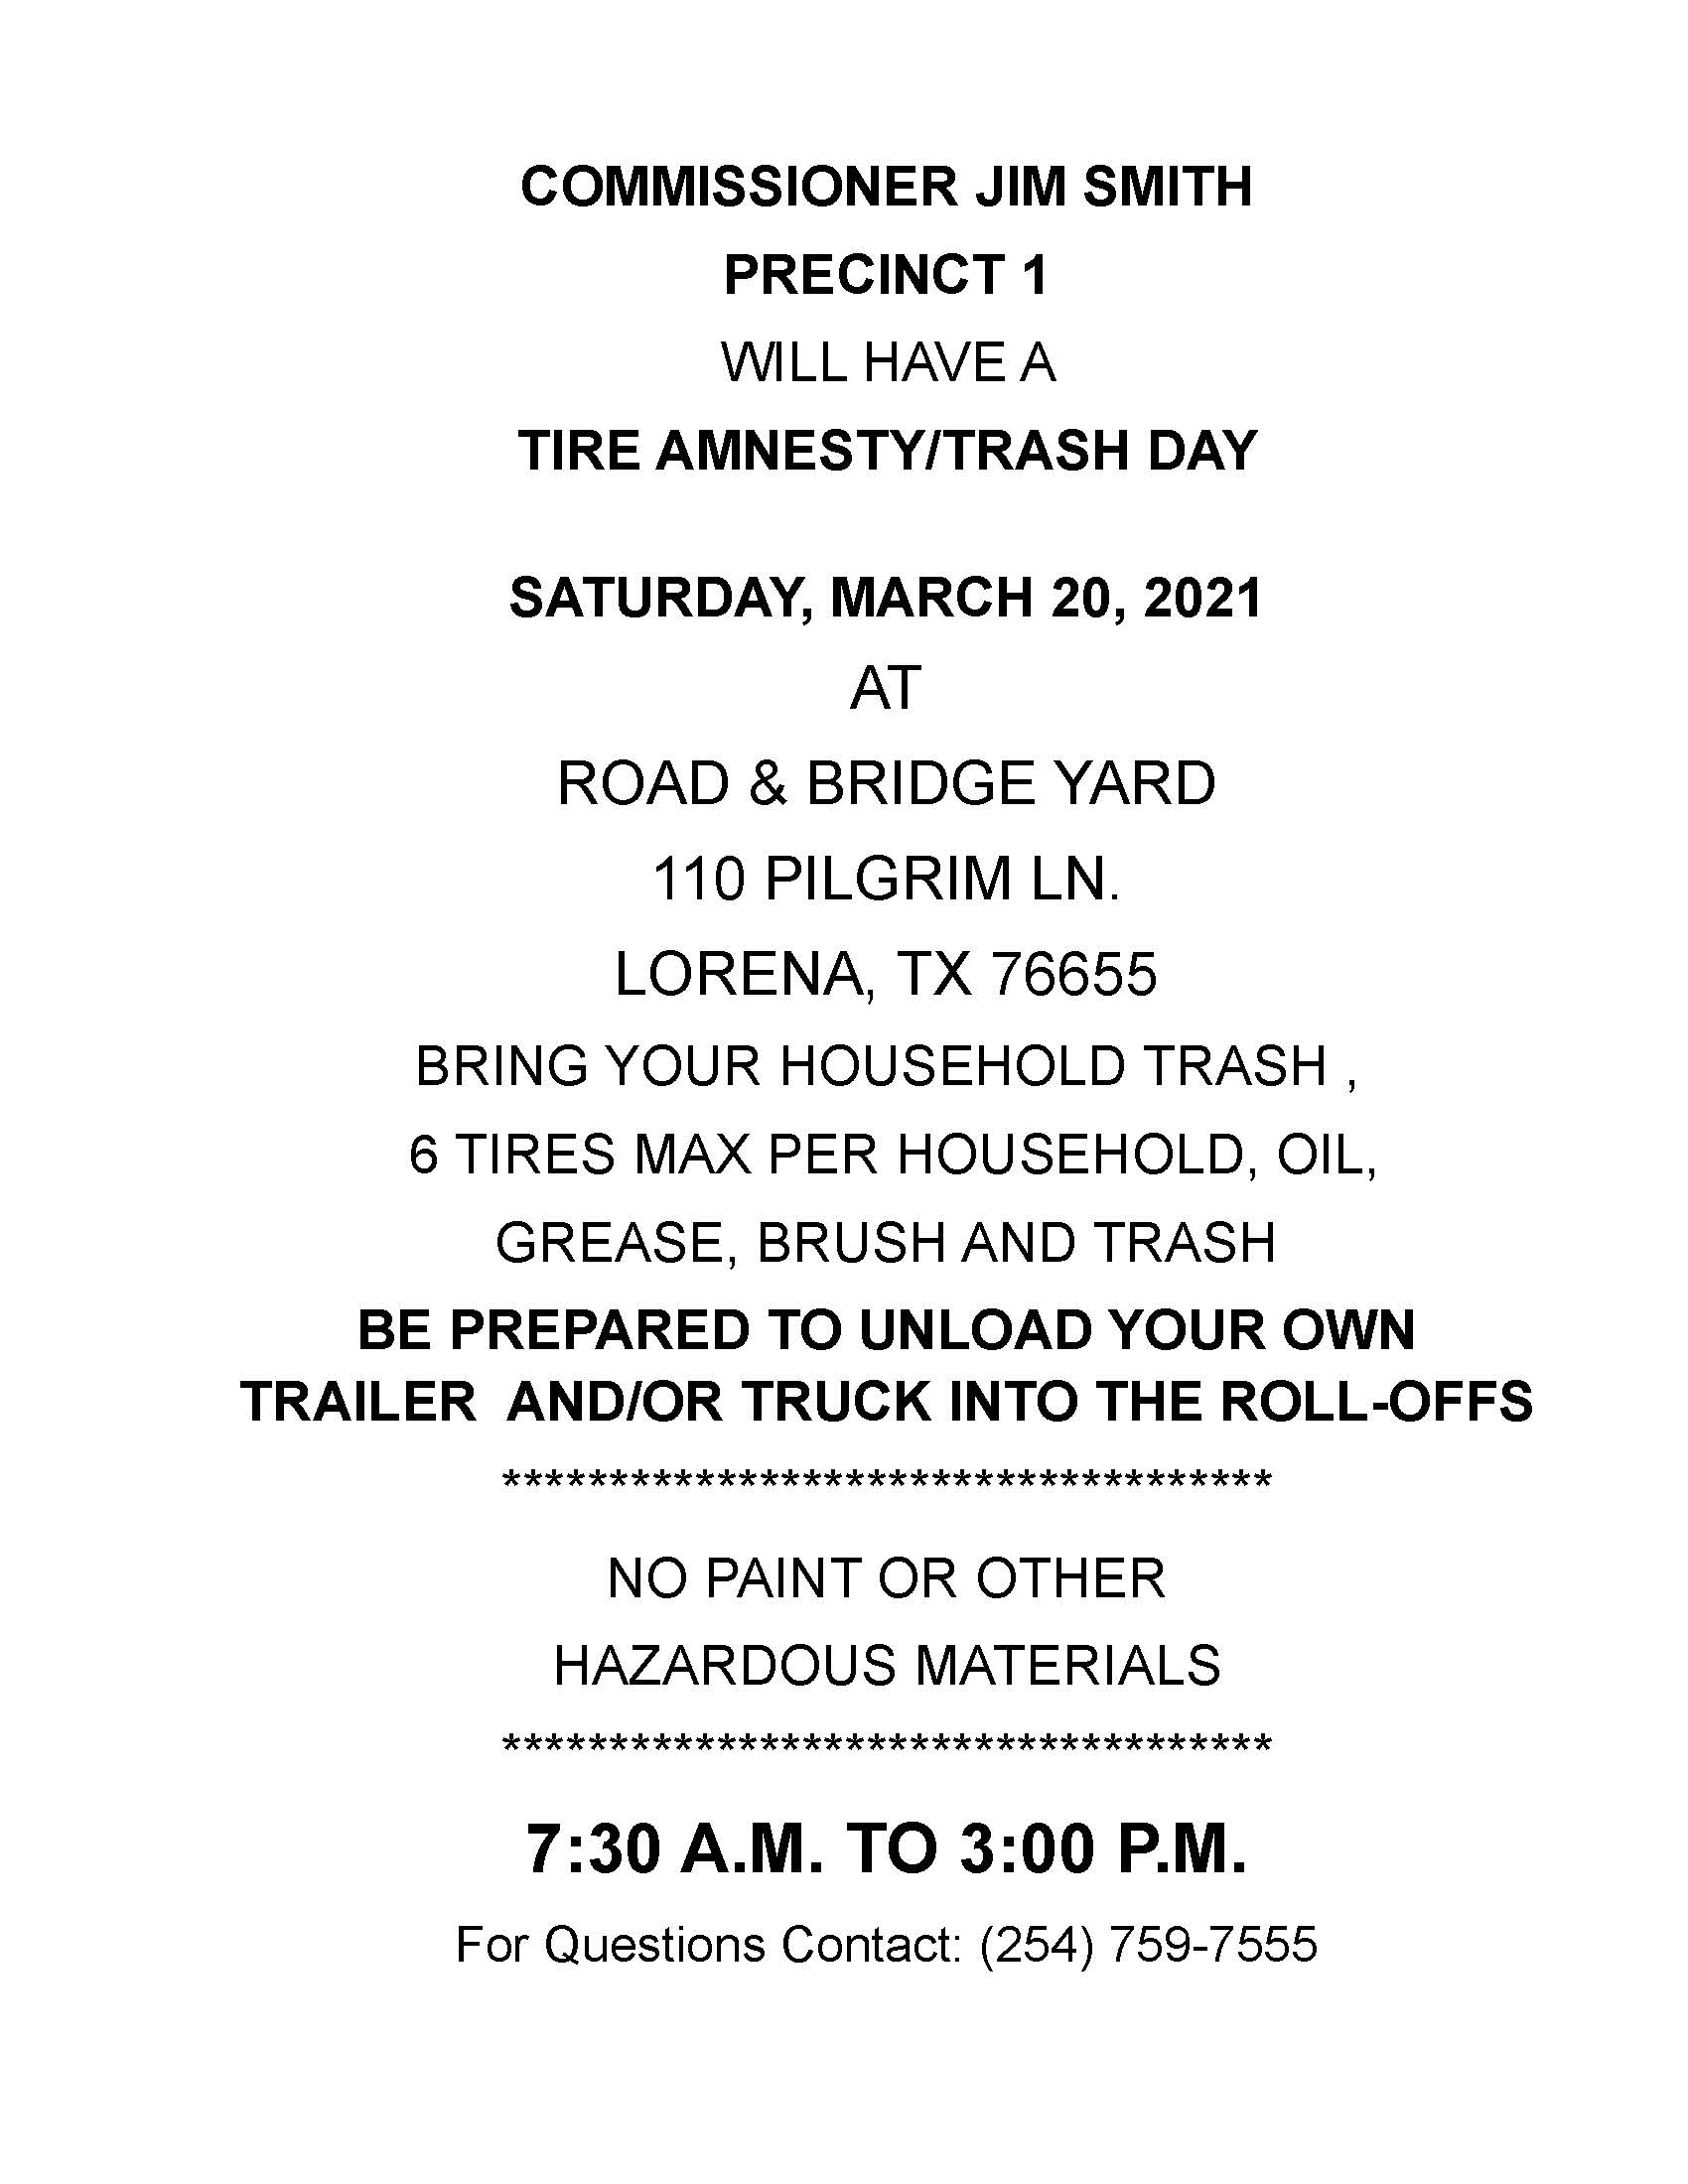 Tire/Trash Day March 20, 2021 Flyer